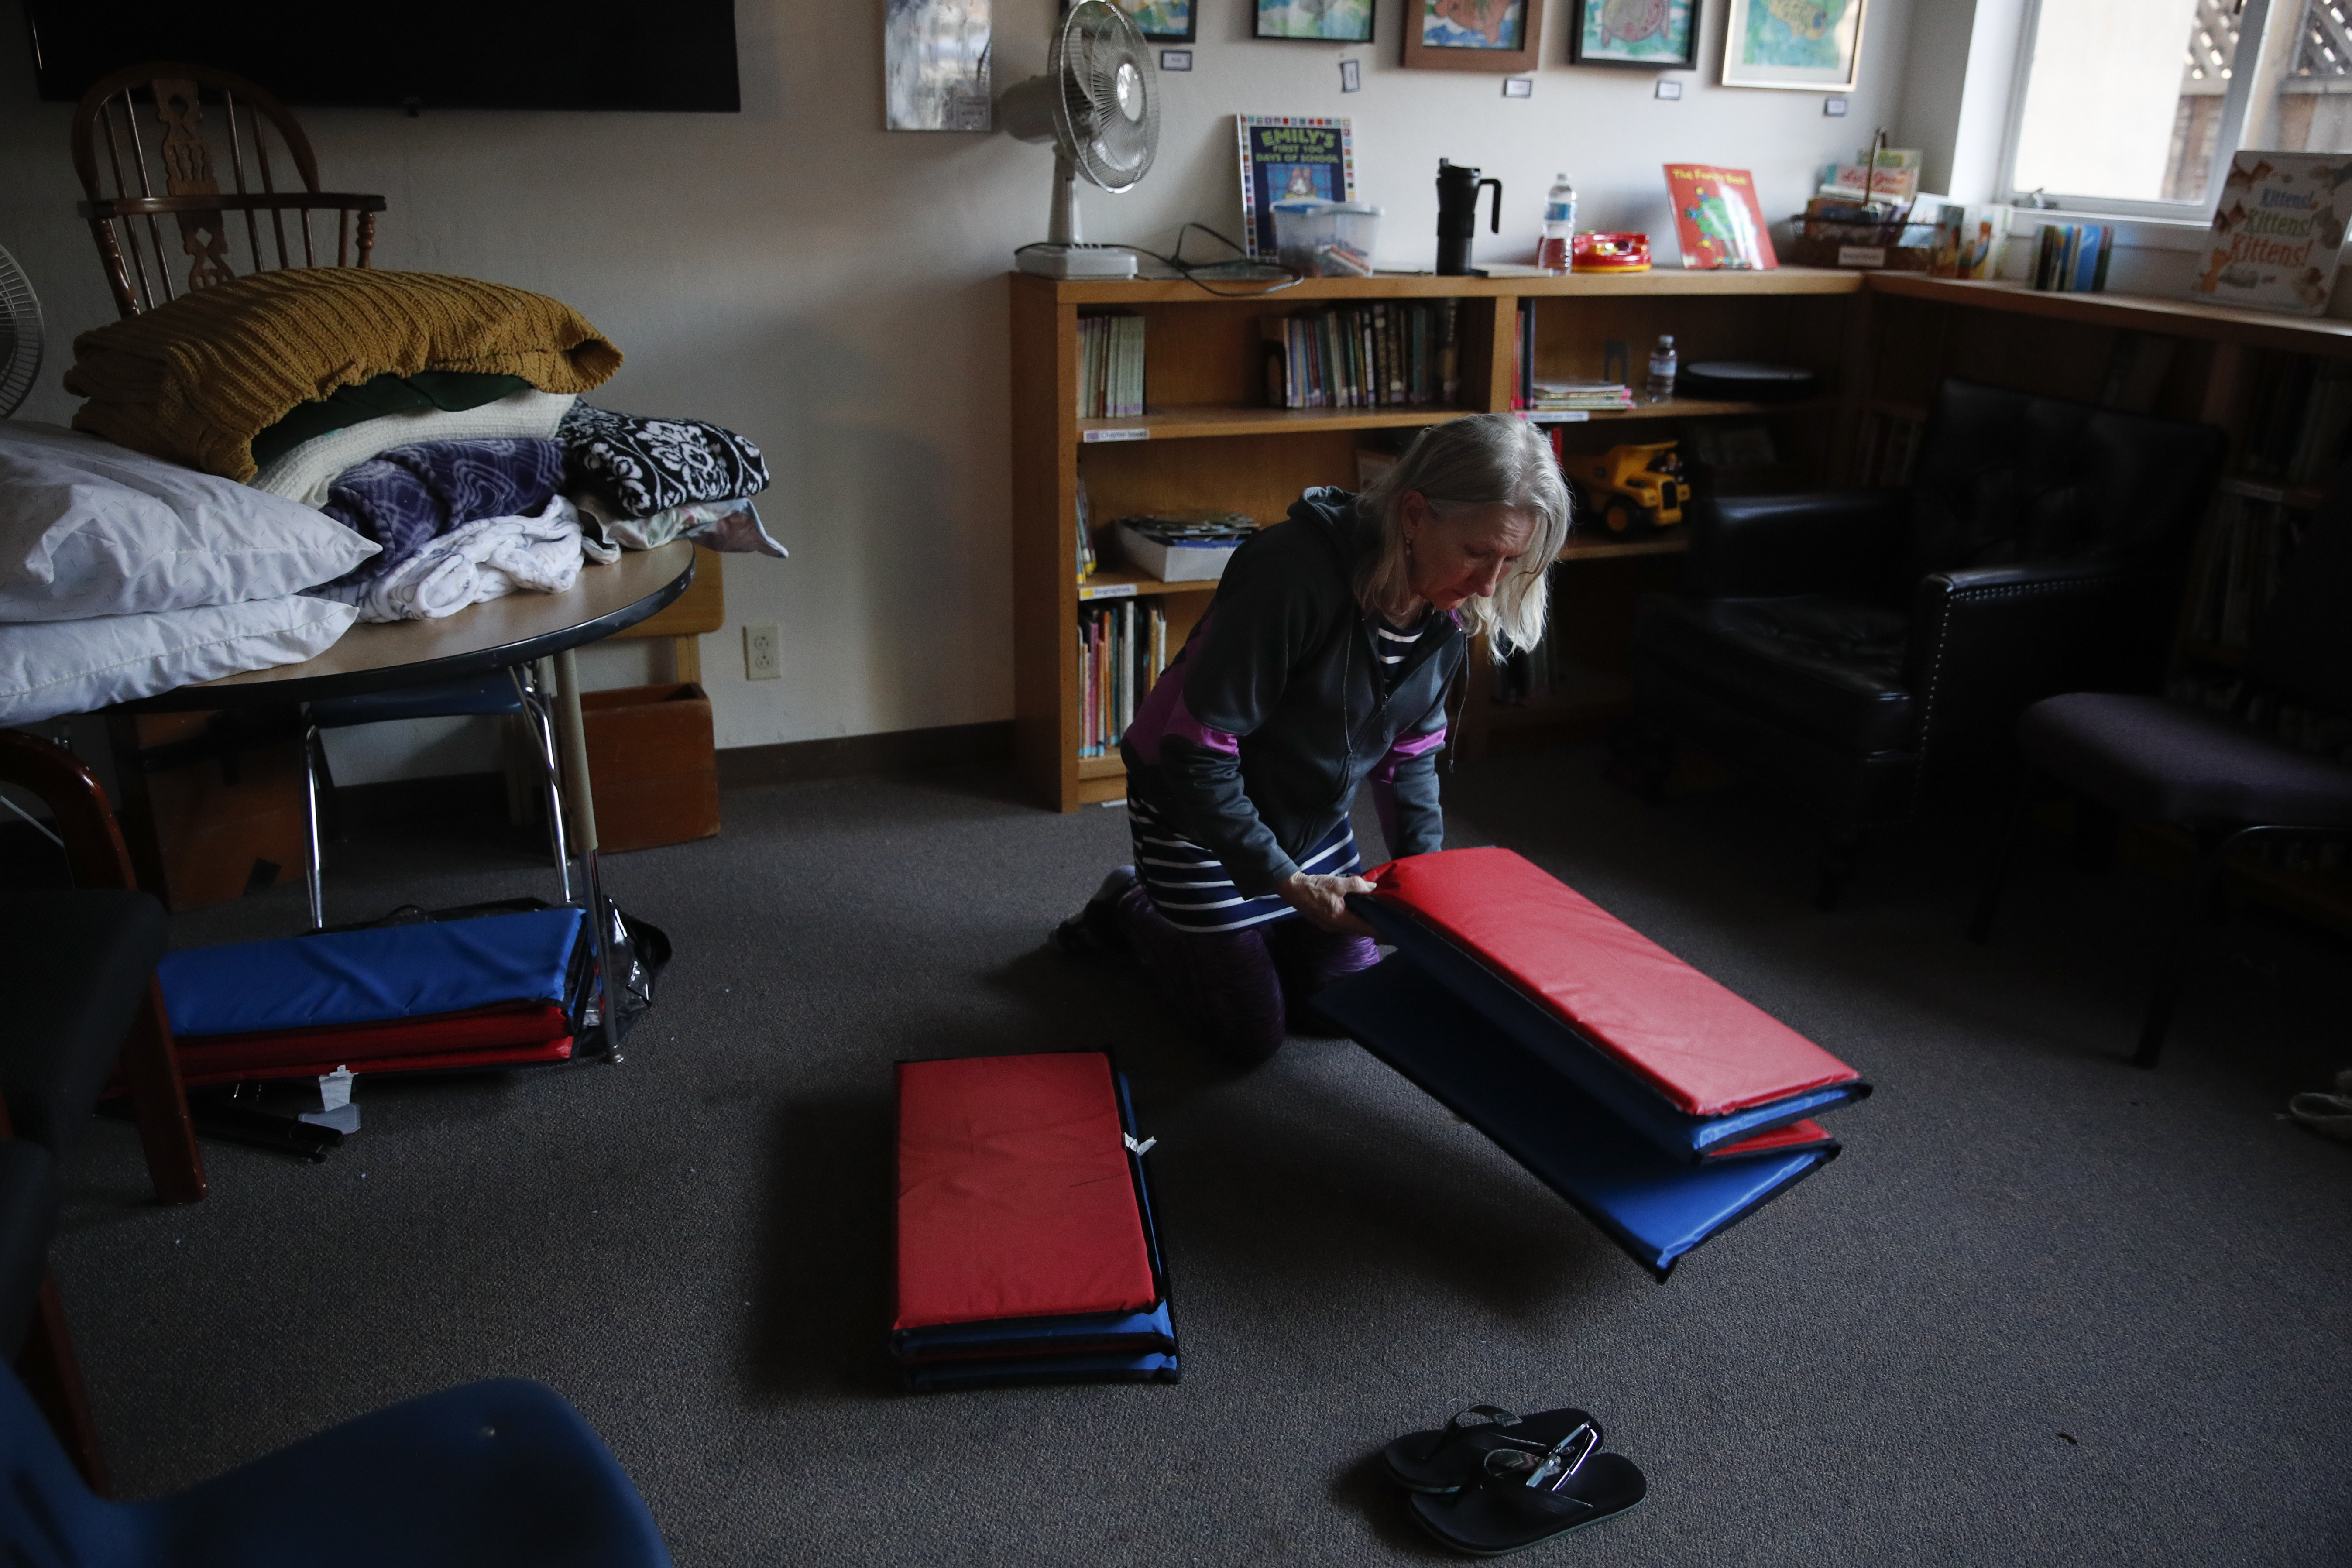 <div class='meta'><div class='origin-logo' data-origin='none'></div><span class='caption-text' data-credit='Jae C. Hong/AP Photo'>Wildfire evacuee Janice Carrman, 69, folds a mat she sleeps on at the First United Methodist Church that doubles as an evacuation shelter Sunday, Oct. 15, in Santa Rosa, Calif.</span></div>